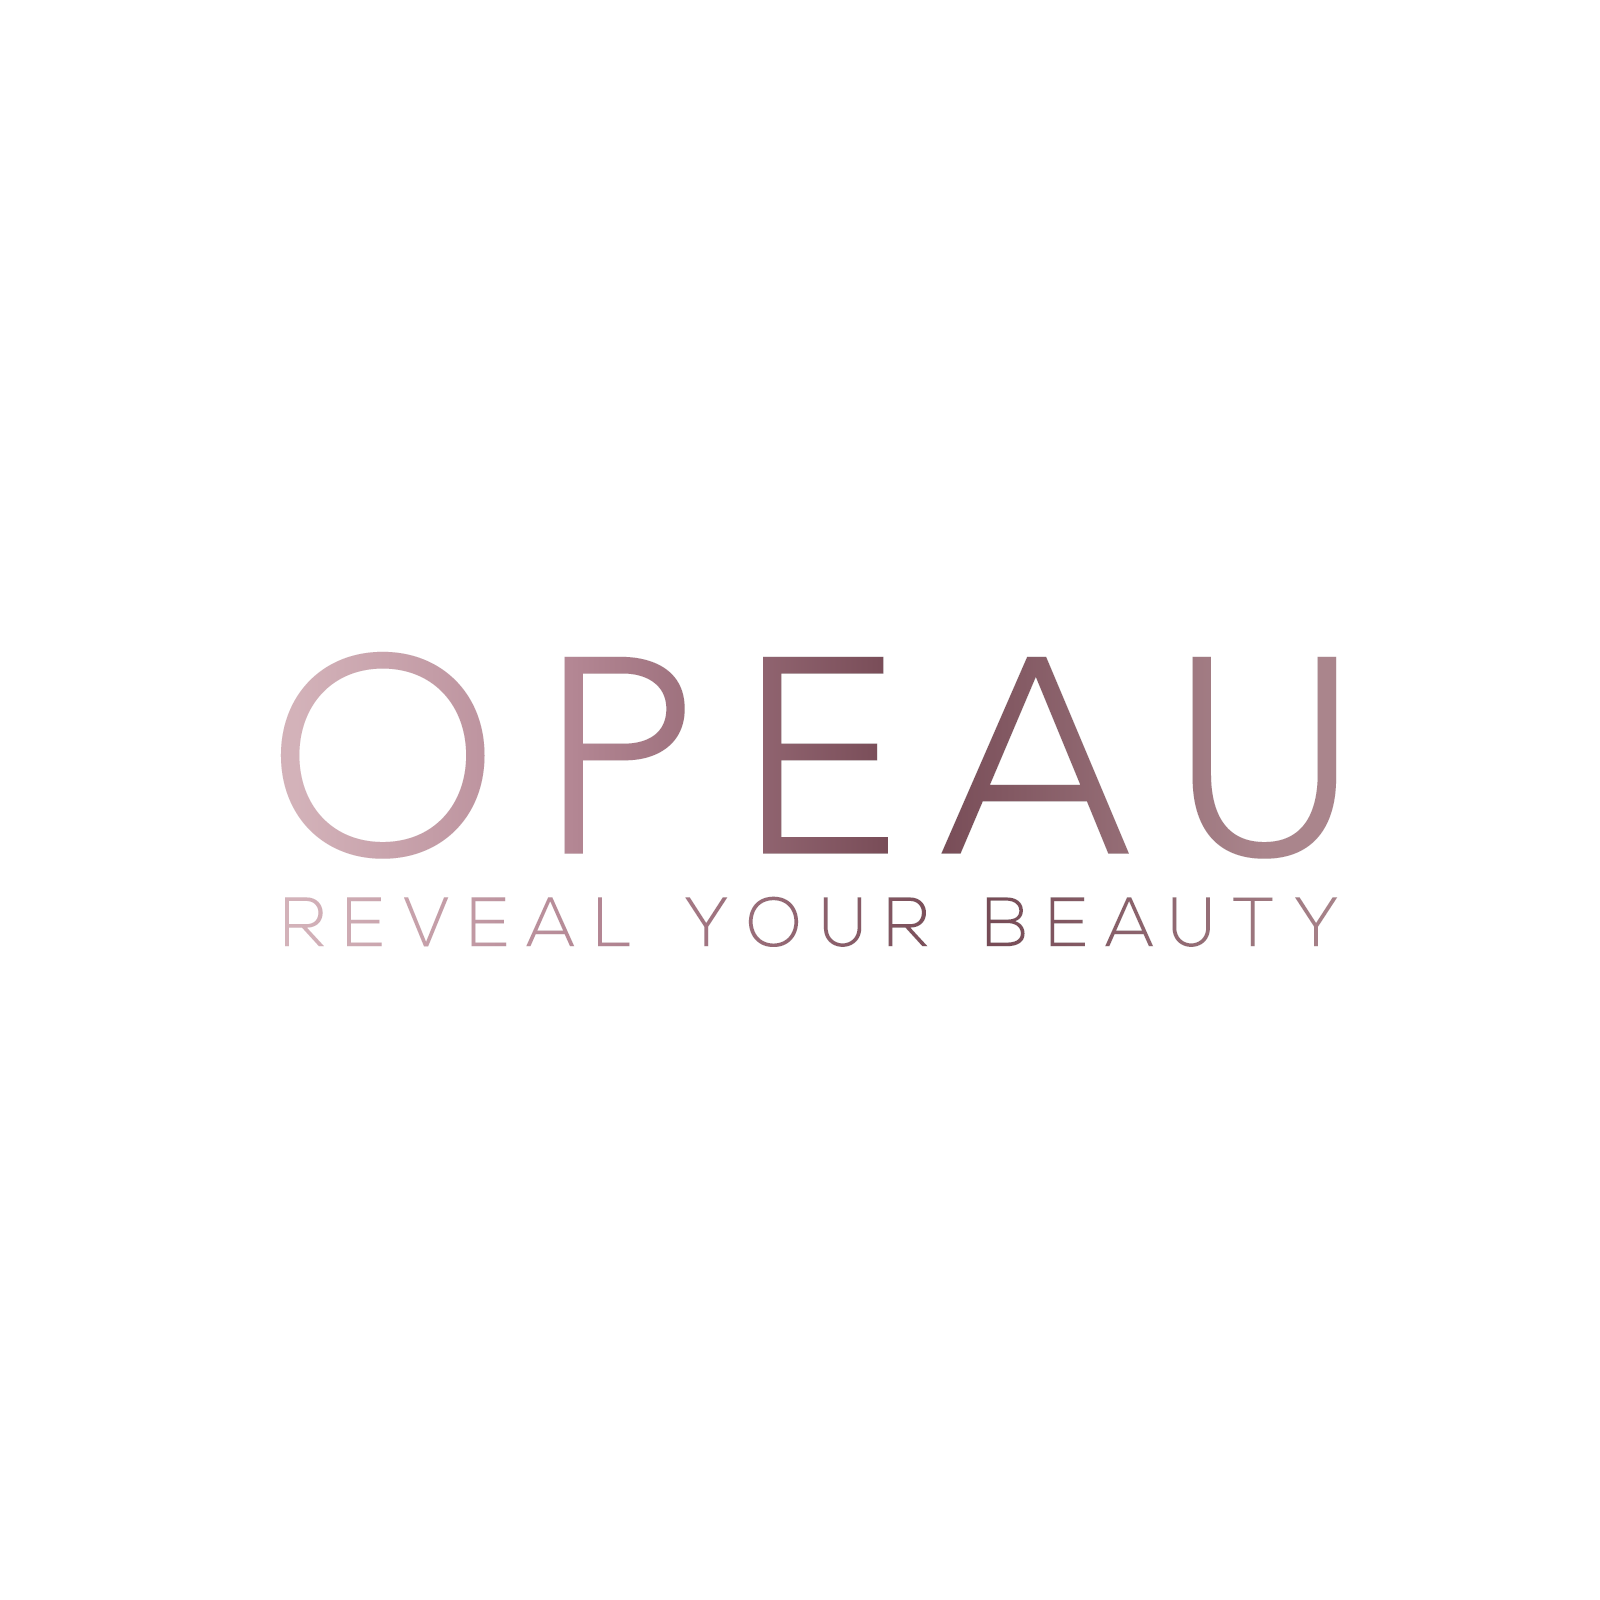 Opeau Rose, the Only Skin-Protective IPL Device with Unique Ice Cooling to Soothe the Skin